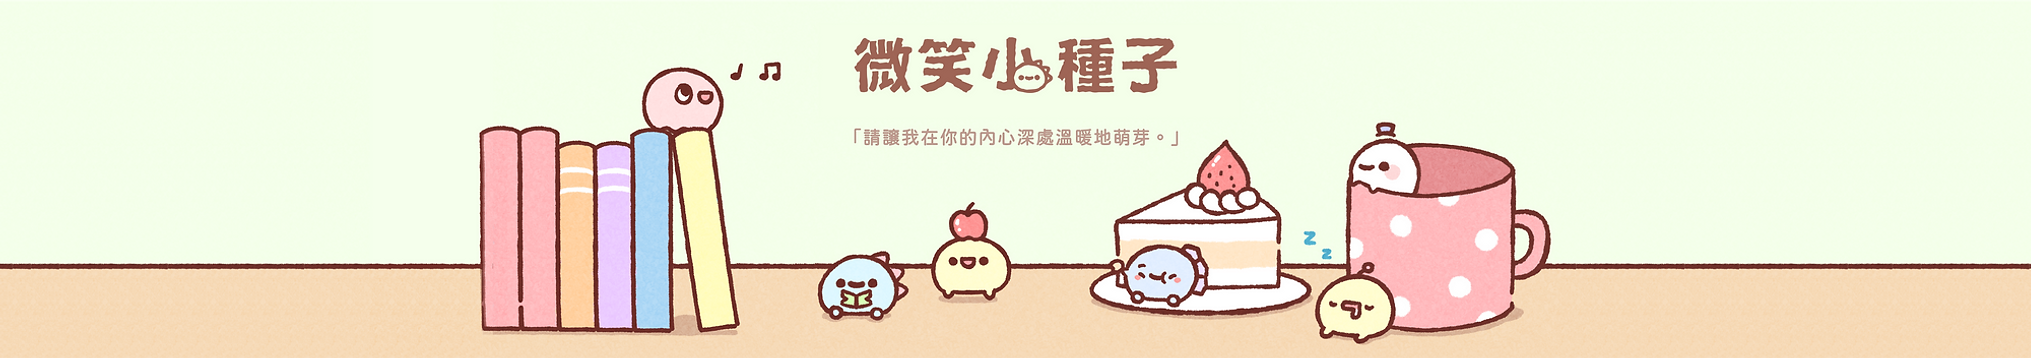 smileseed-banner.png